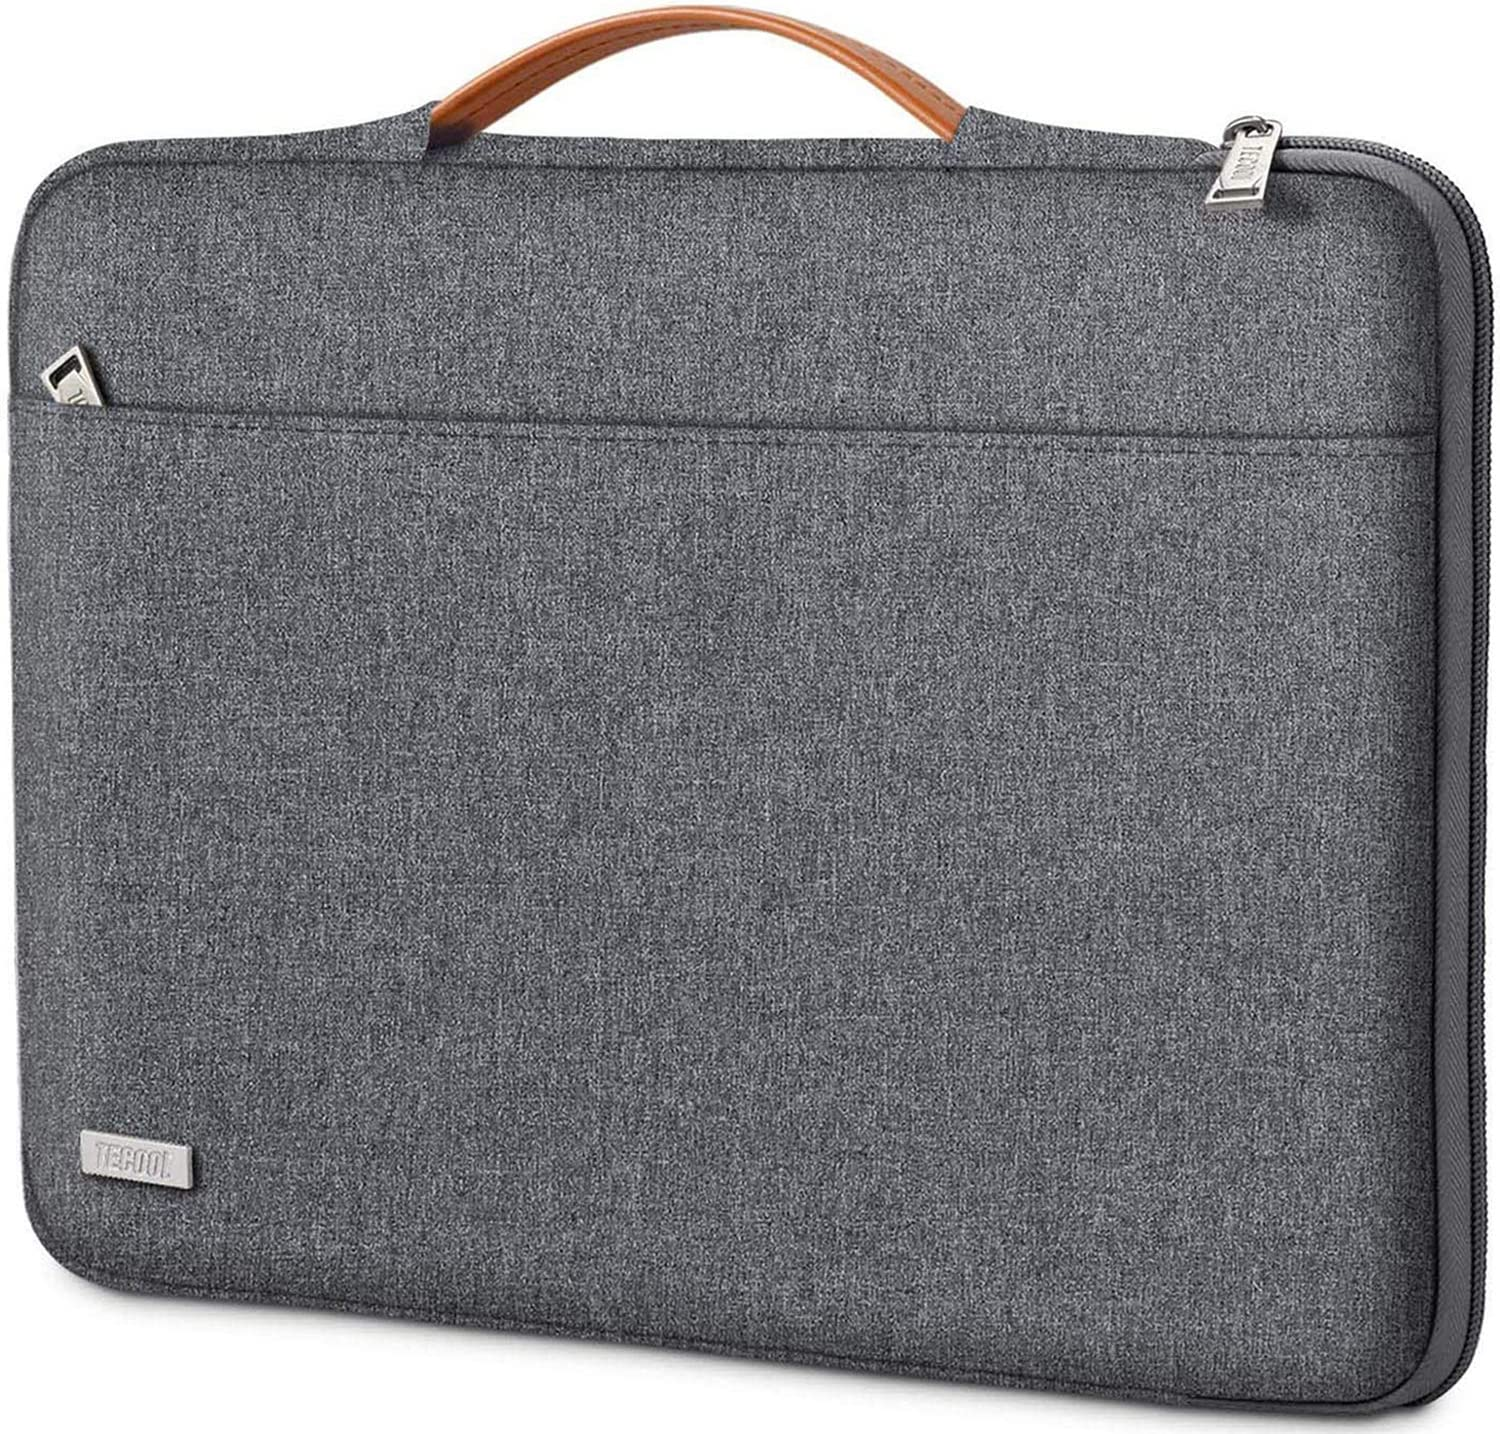 TECOOL 14 Inch Laptop Sleeve Briefcase with Handle & Zip Pocket for 14